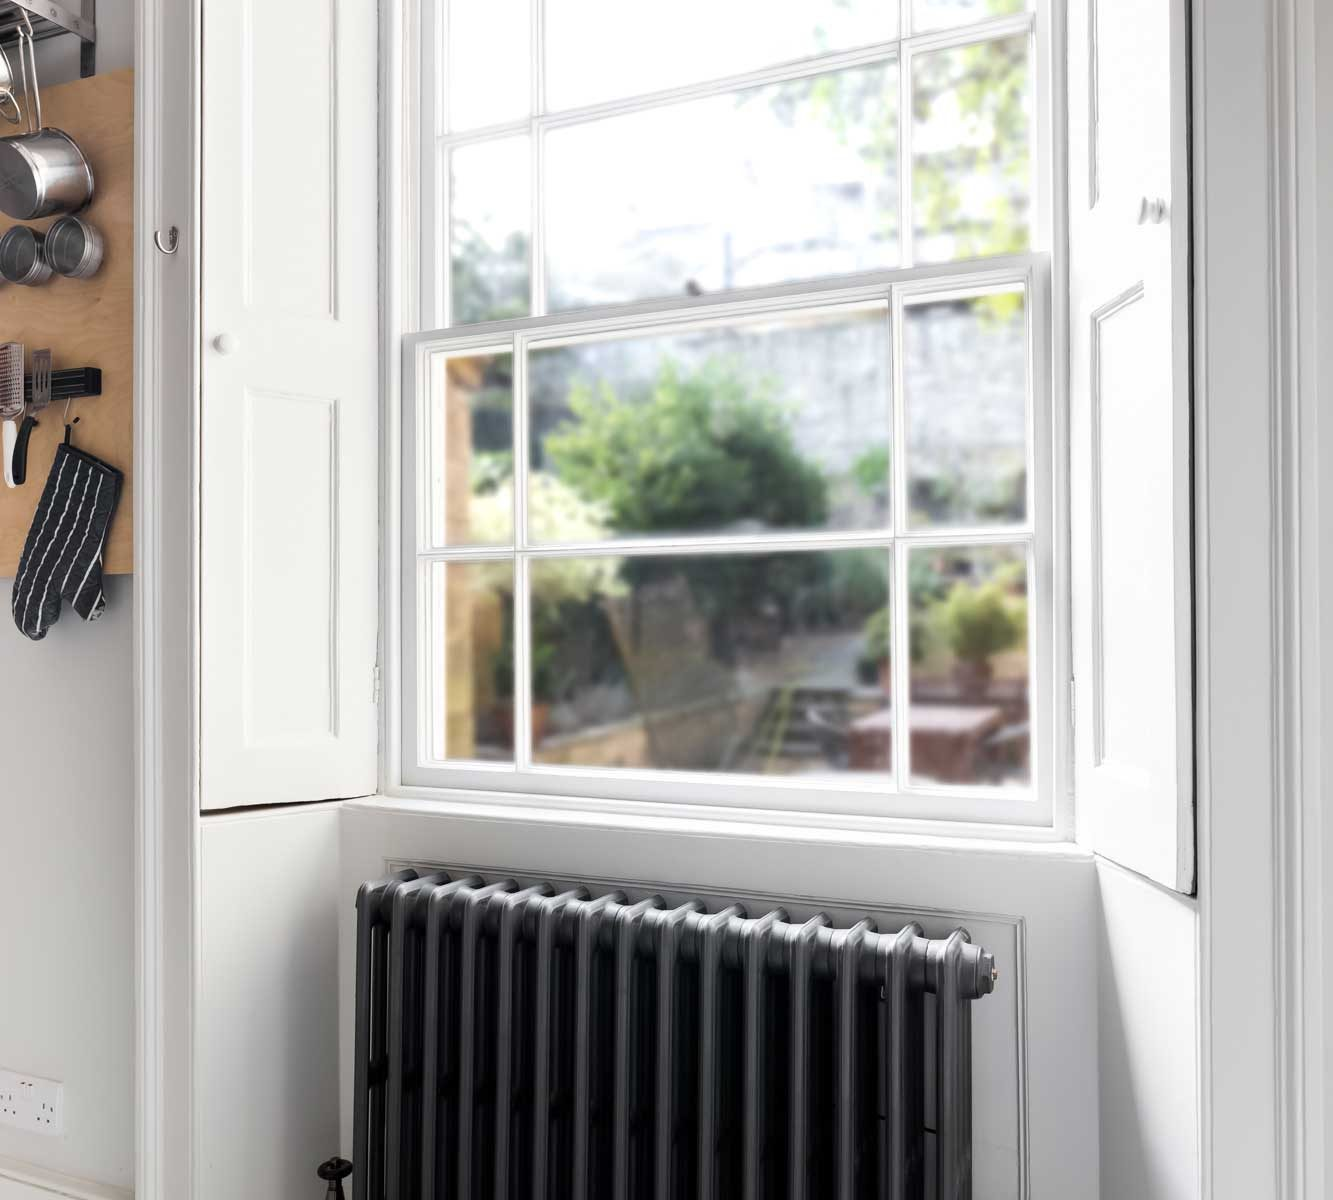 Sash window in kitchen